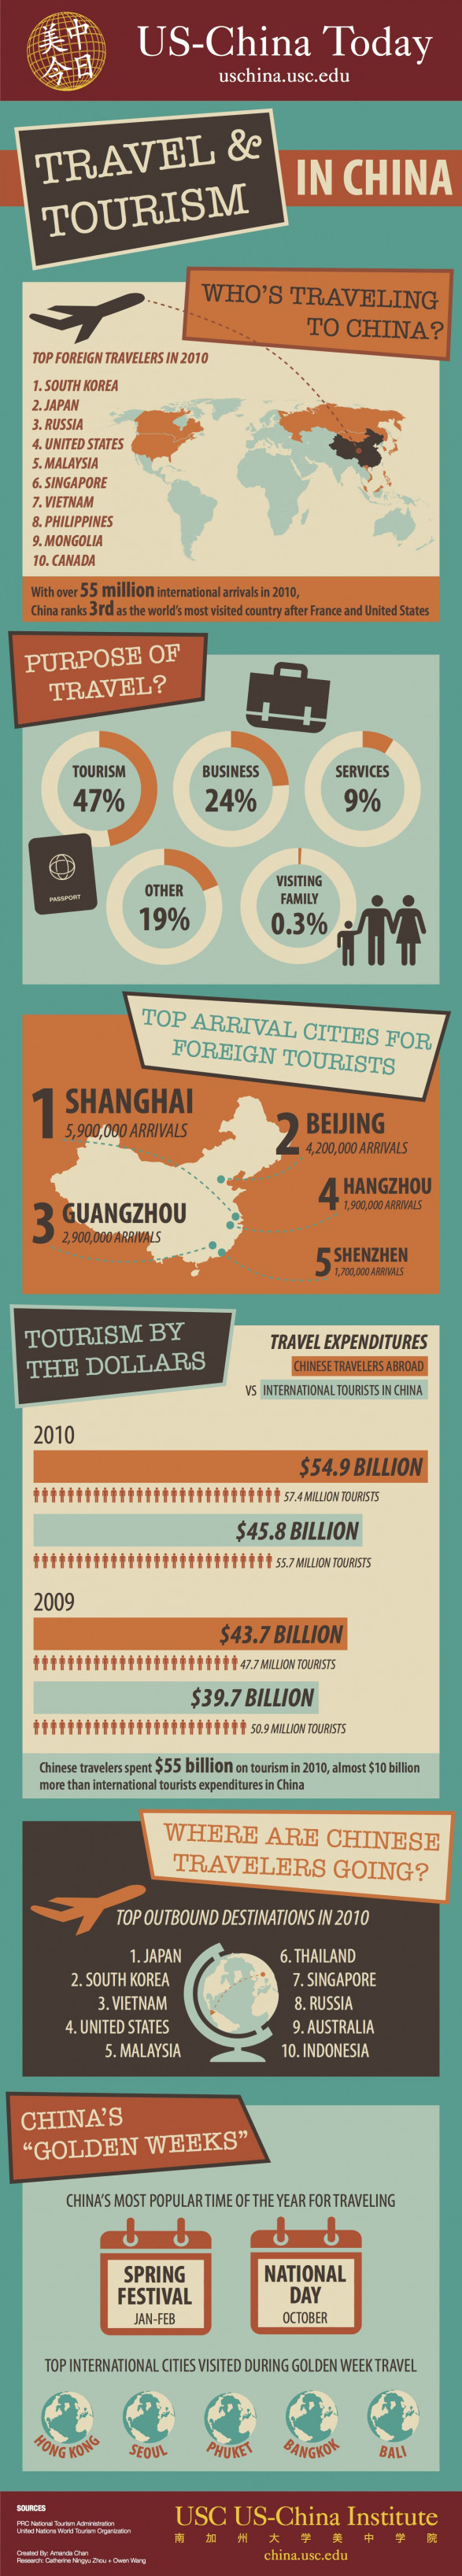 Travel & Tourism in China